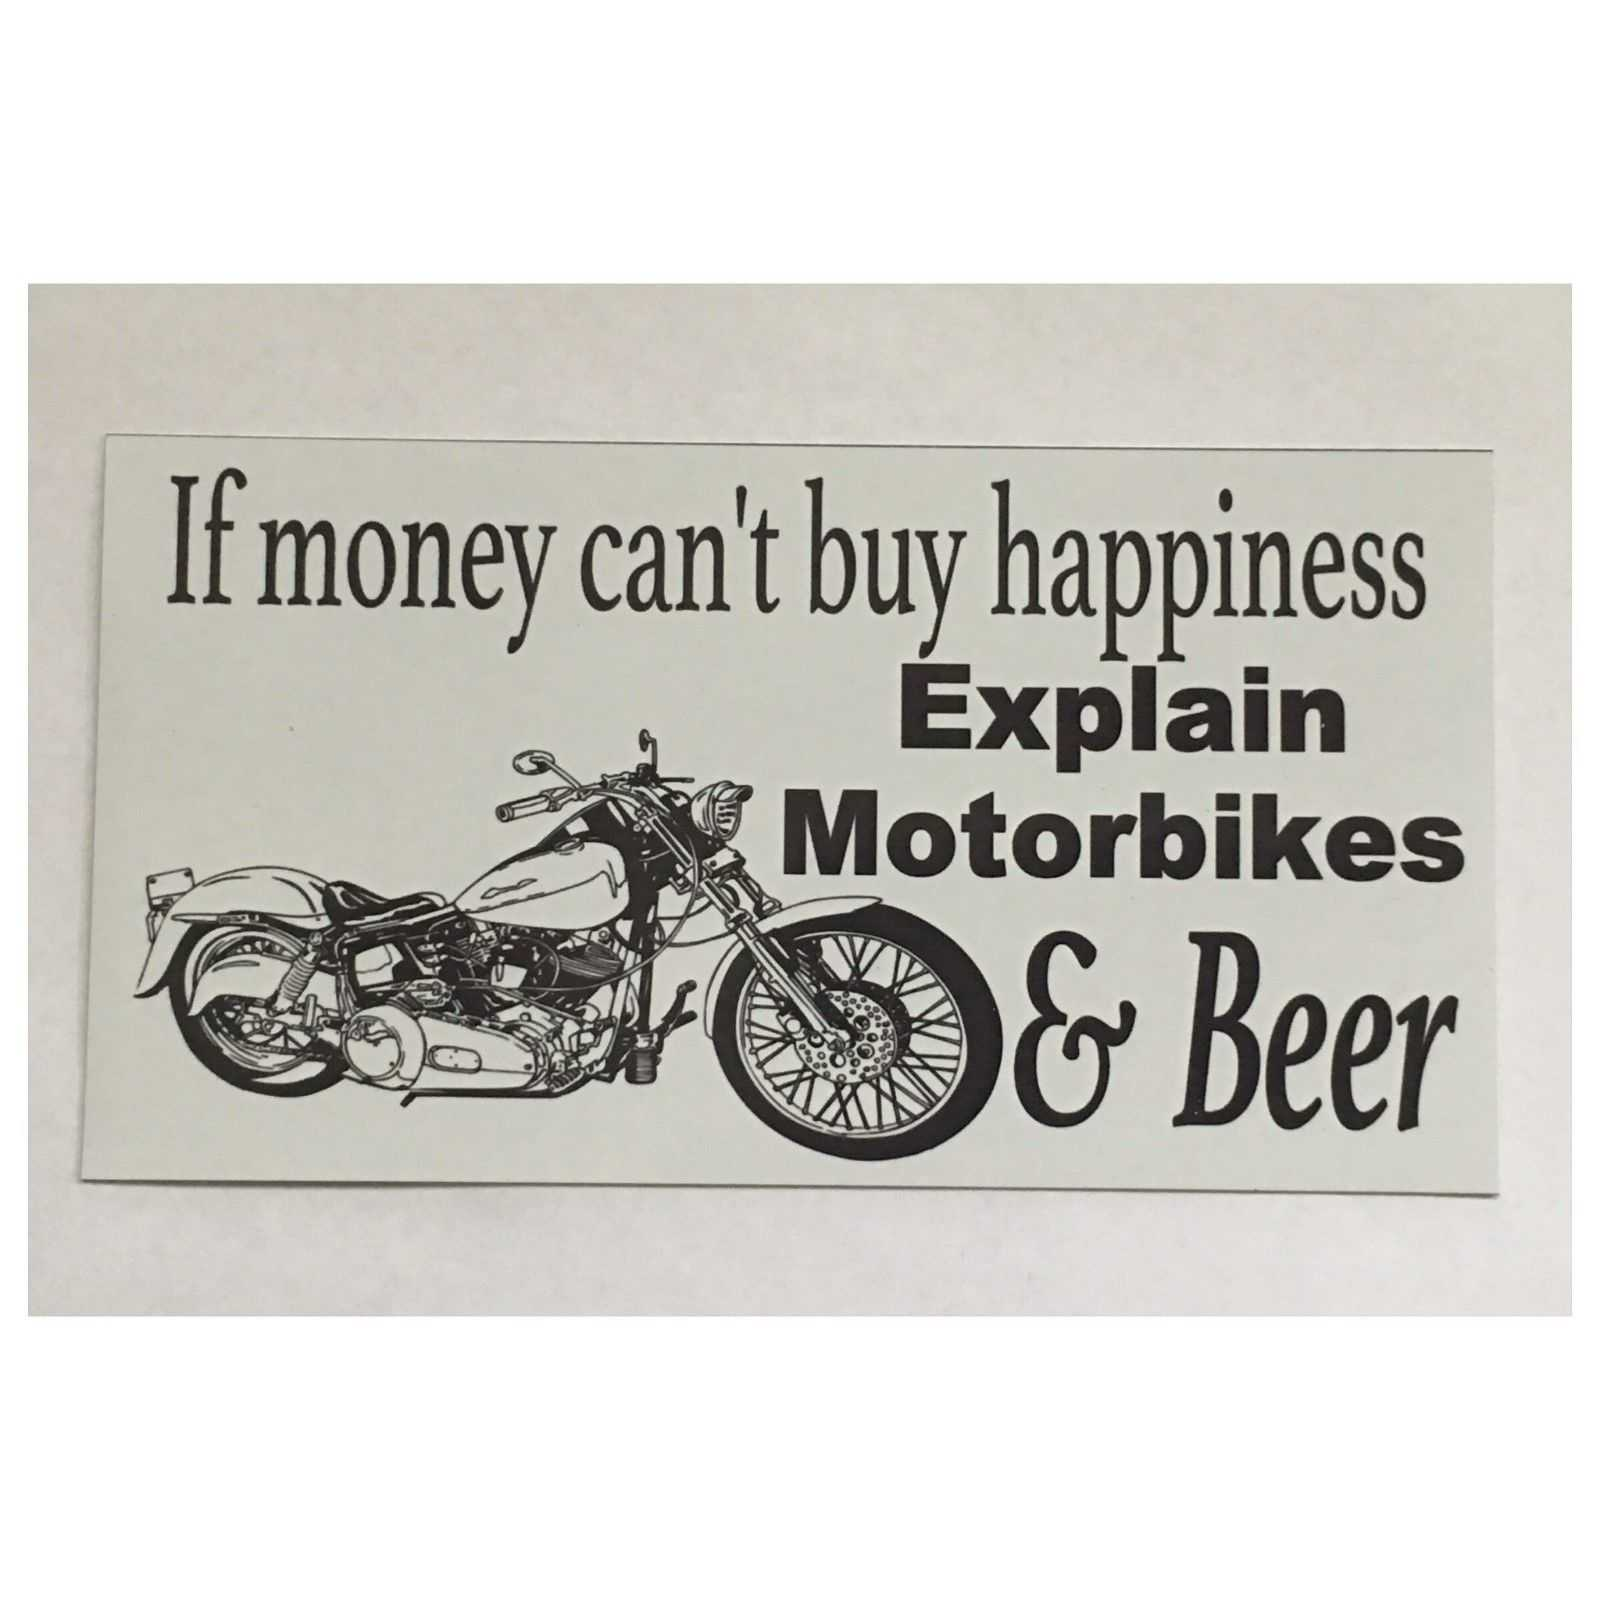 Motor Bikes Motorcycle & Beer Sign Plaques & Signs The Renmy Store